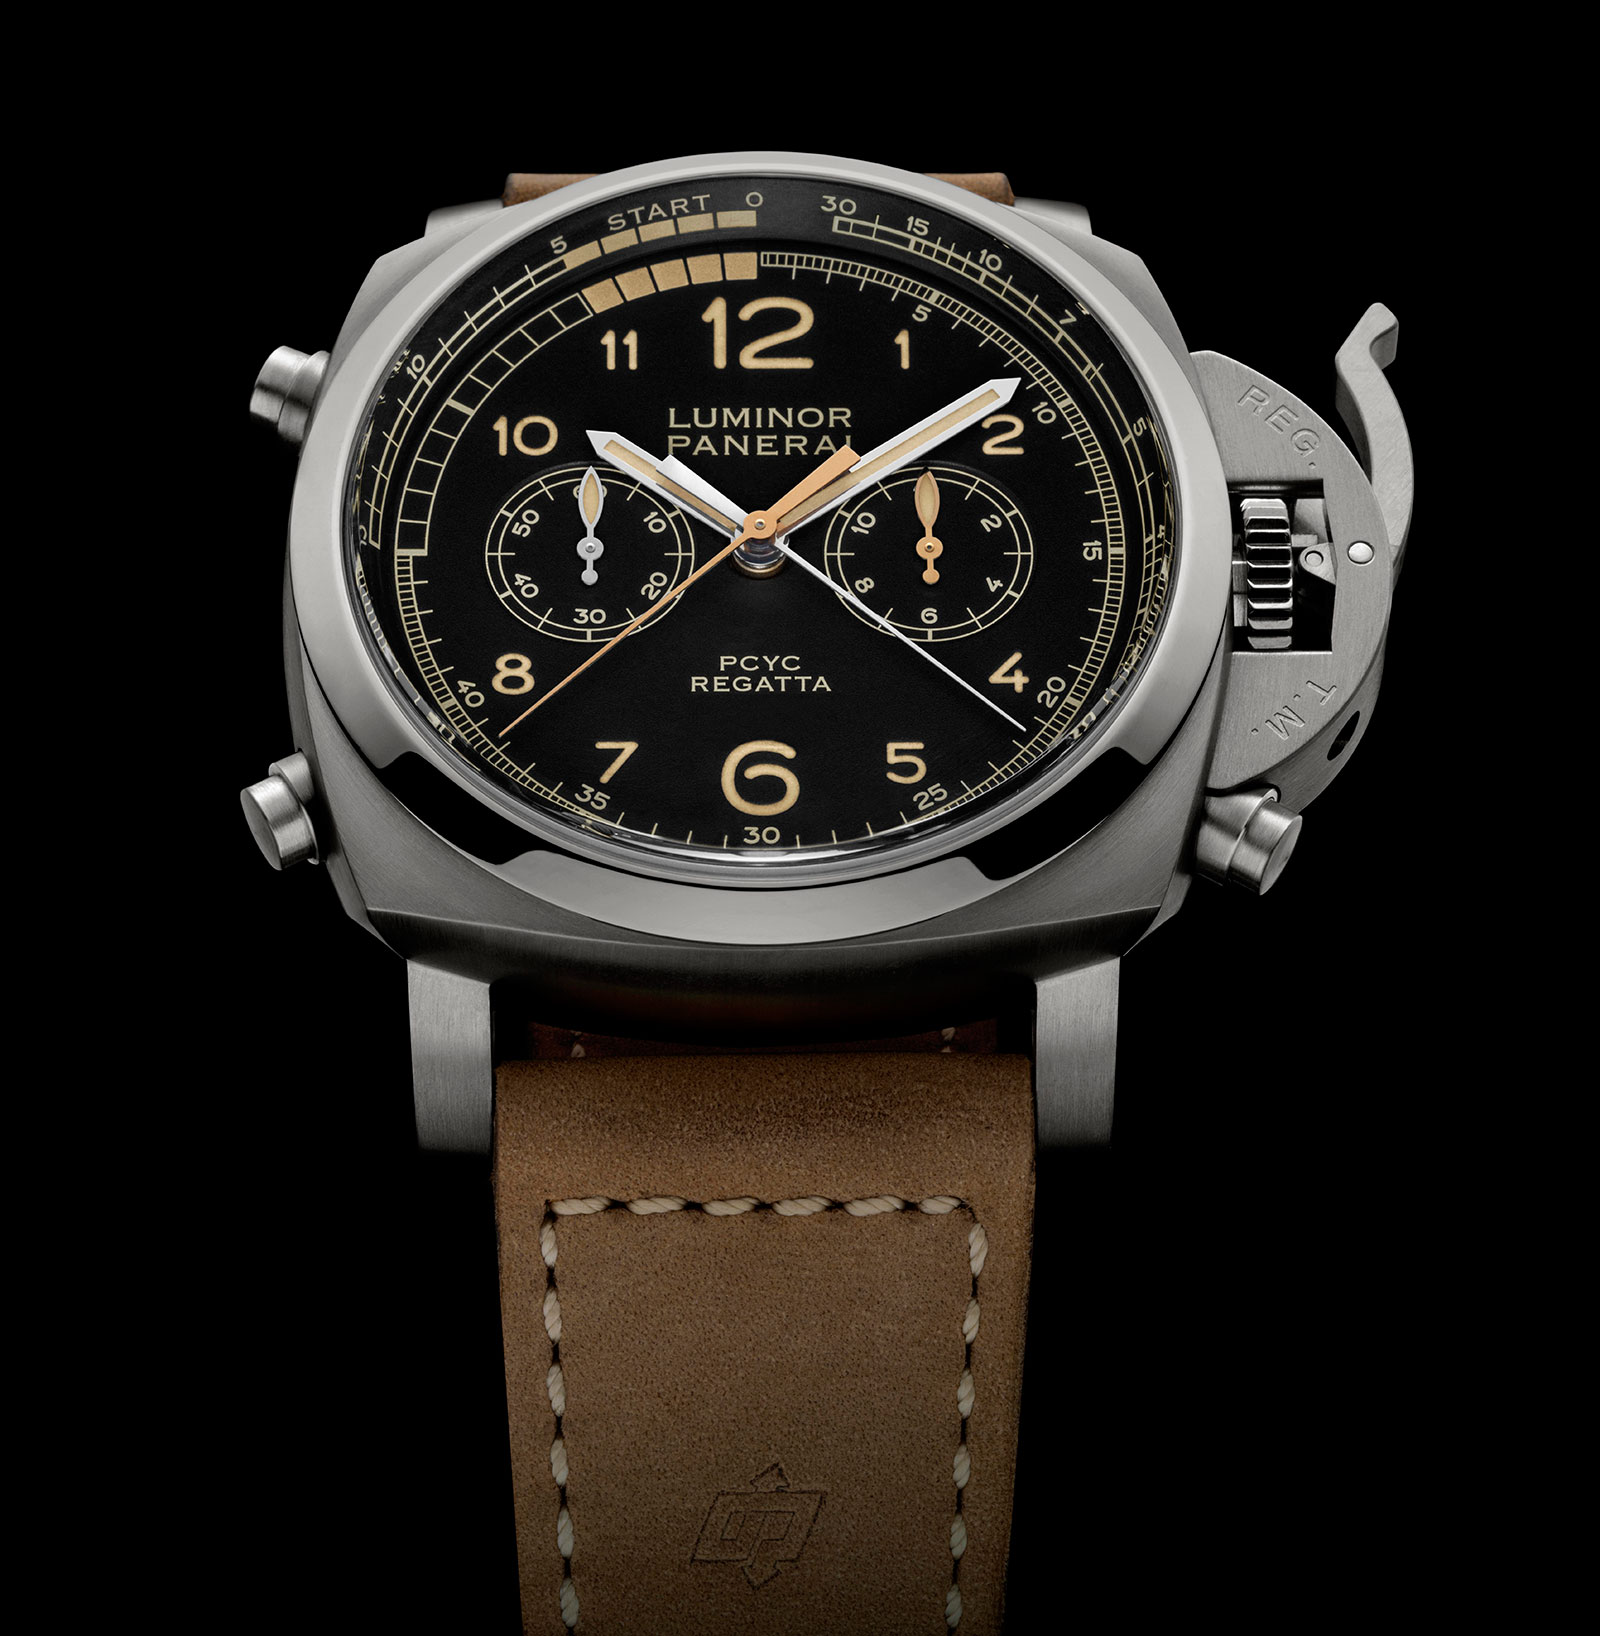 Panerai Luminor 1950 Regatta PCYC Chrono PAM652